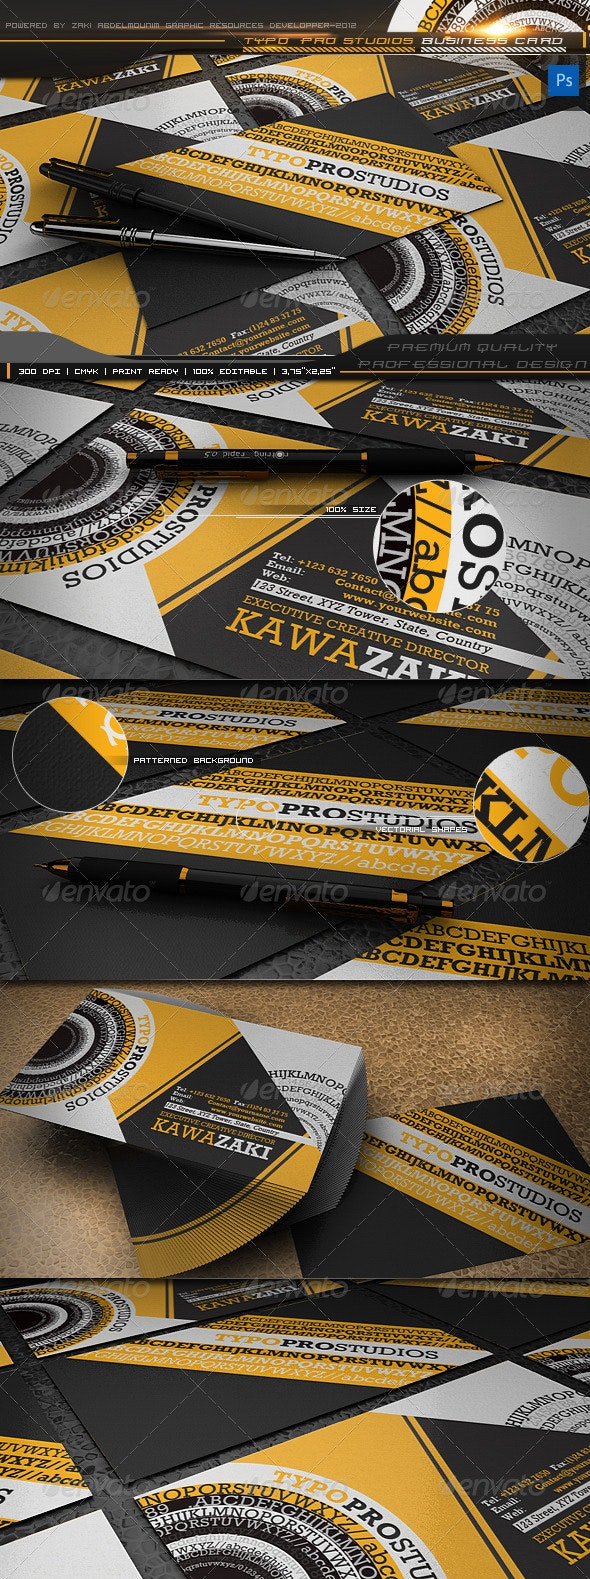 Typo pro studios business card - Creative Business Cards